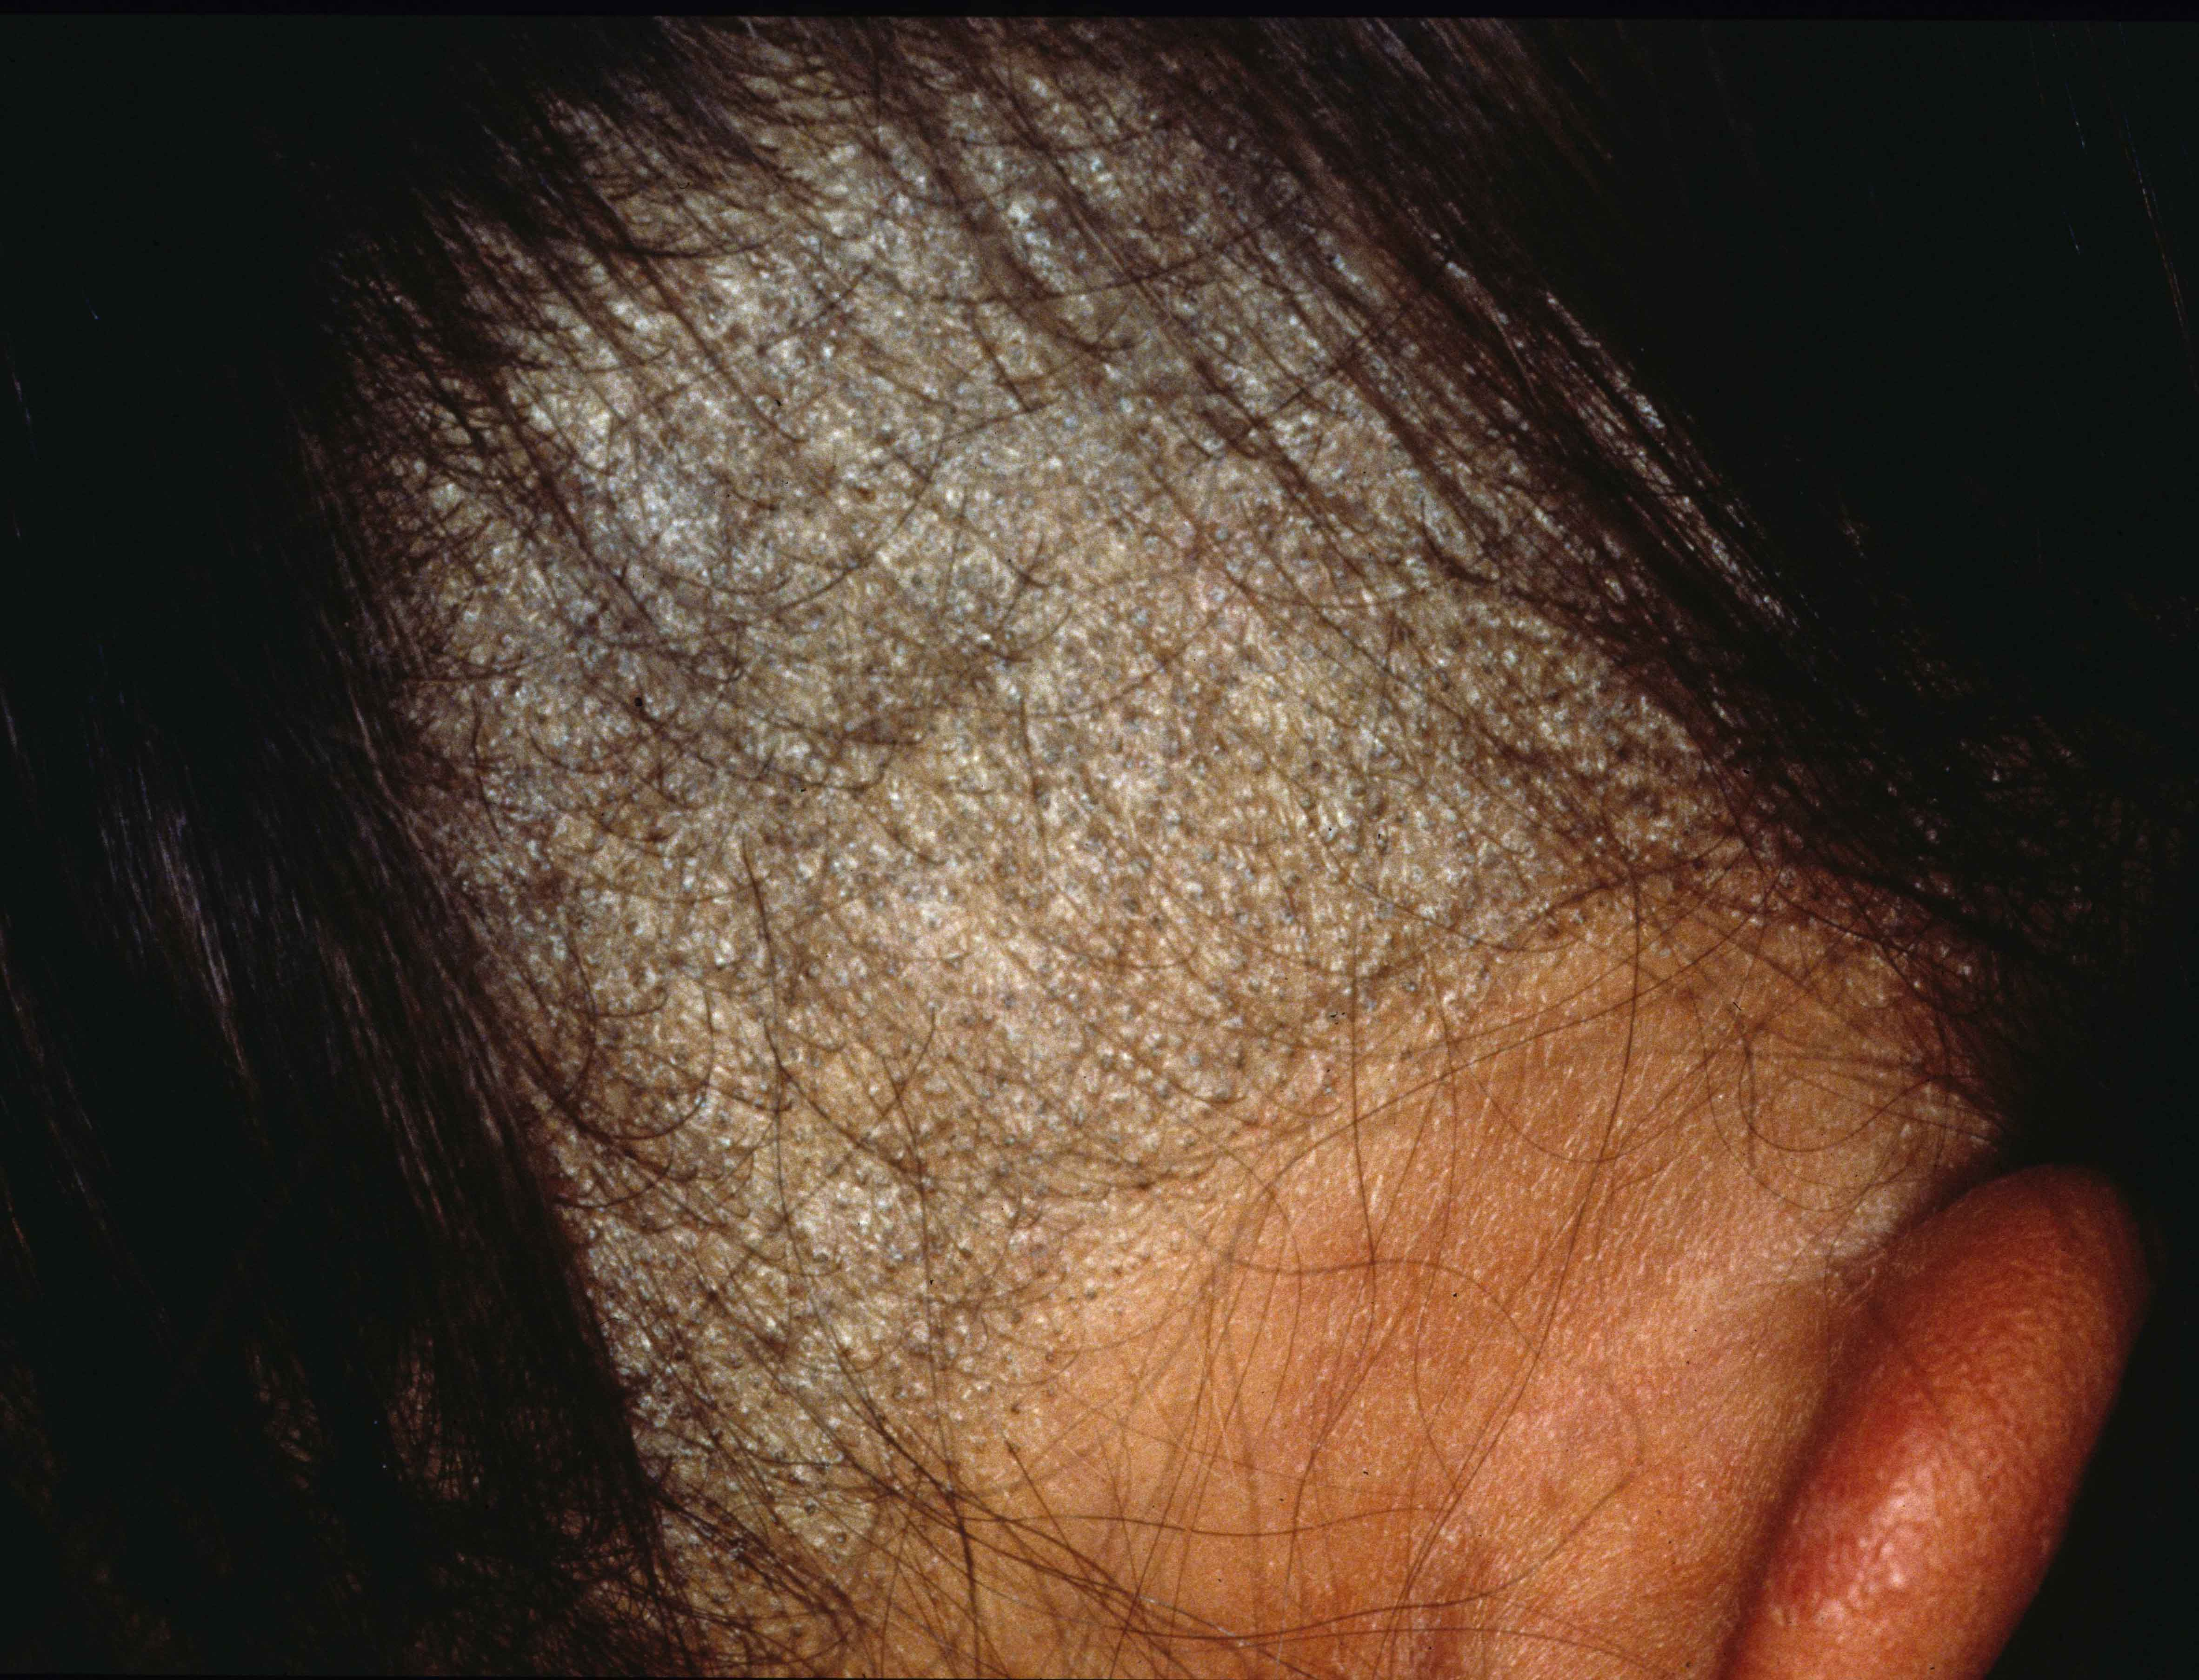 Superficial Mycoses: Dermatophytosis - Infectious Disease